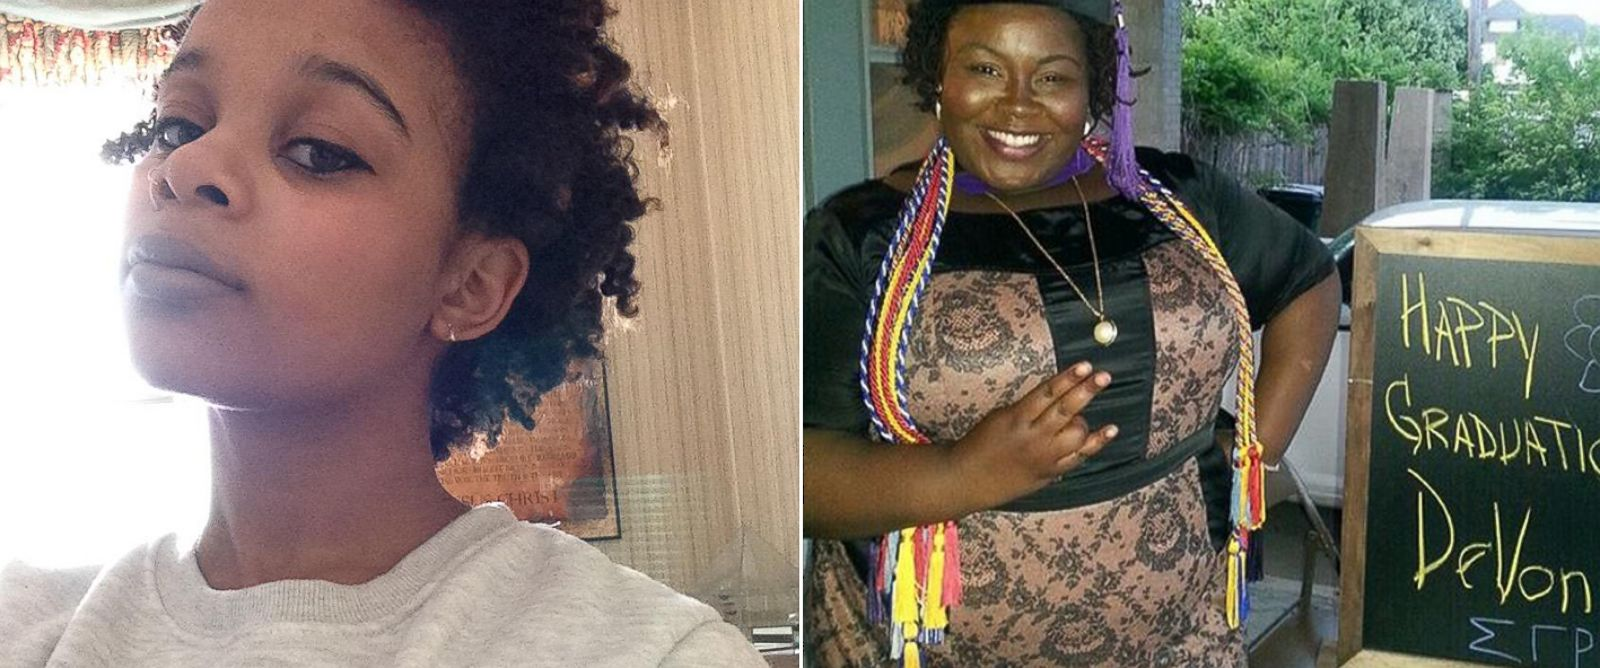 PHOTO: A highlight of the diverse faces of people from the social media campaign #BlackOutDay.